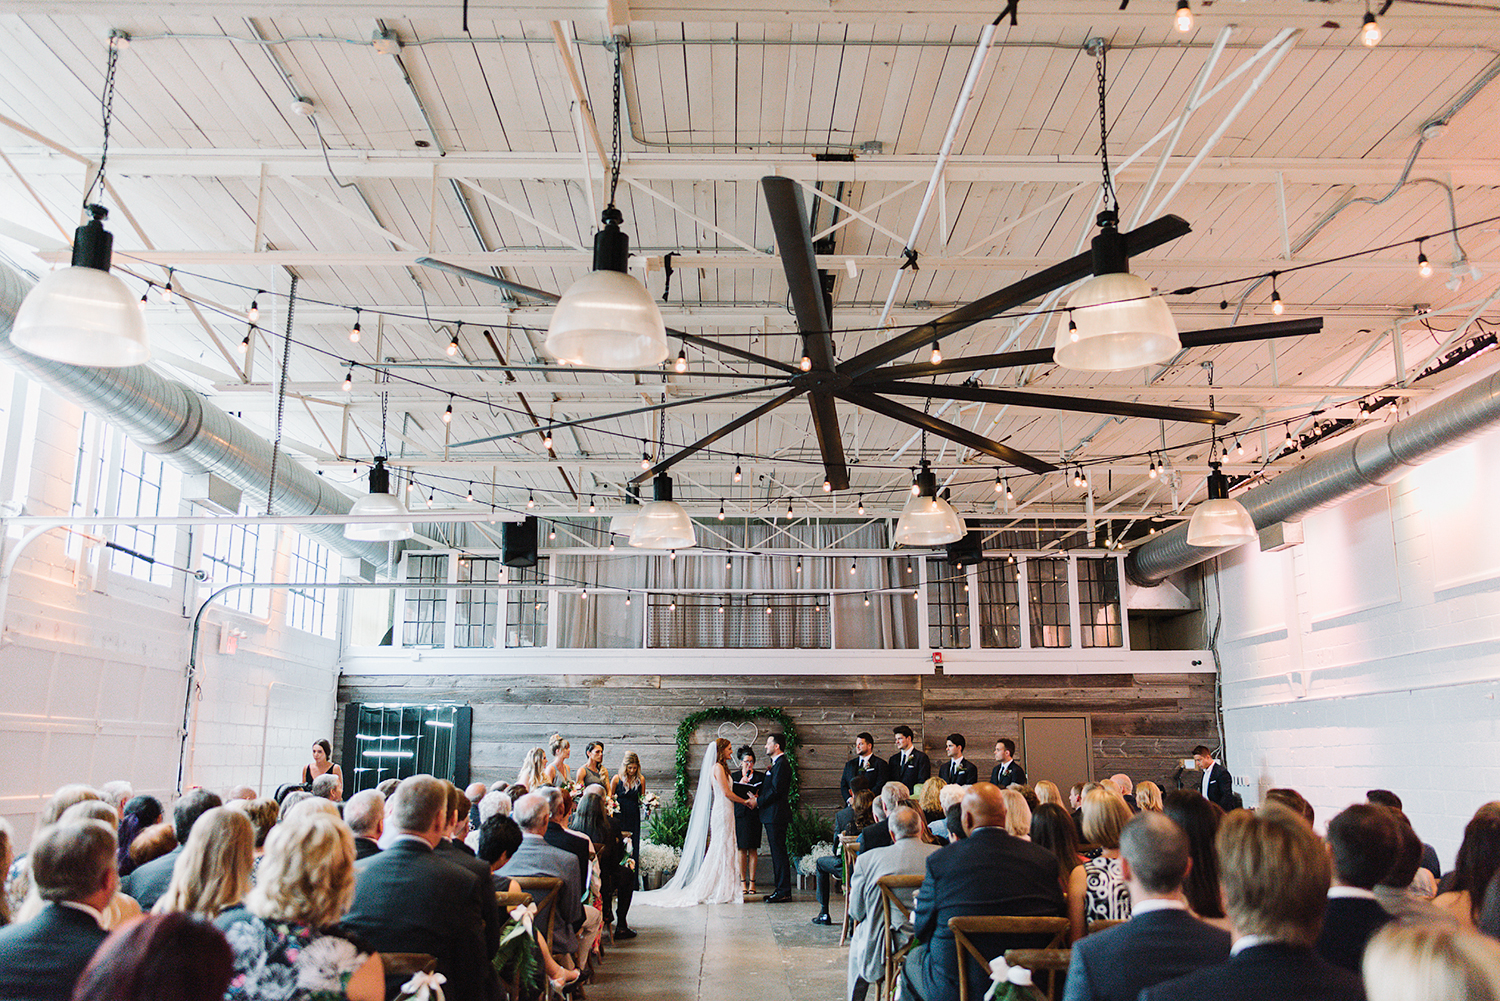 downtown-toronto-wedding-photographer-ryanne-hollies-photography-airship37-distillery-district-wedding-day-modern-minimalist-venues-in-toronto-junebug-weddingsceremony-bride-and-groom-saying-vows-emotional-beautiful-epic-view.jpg